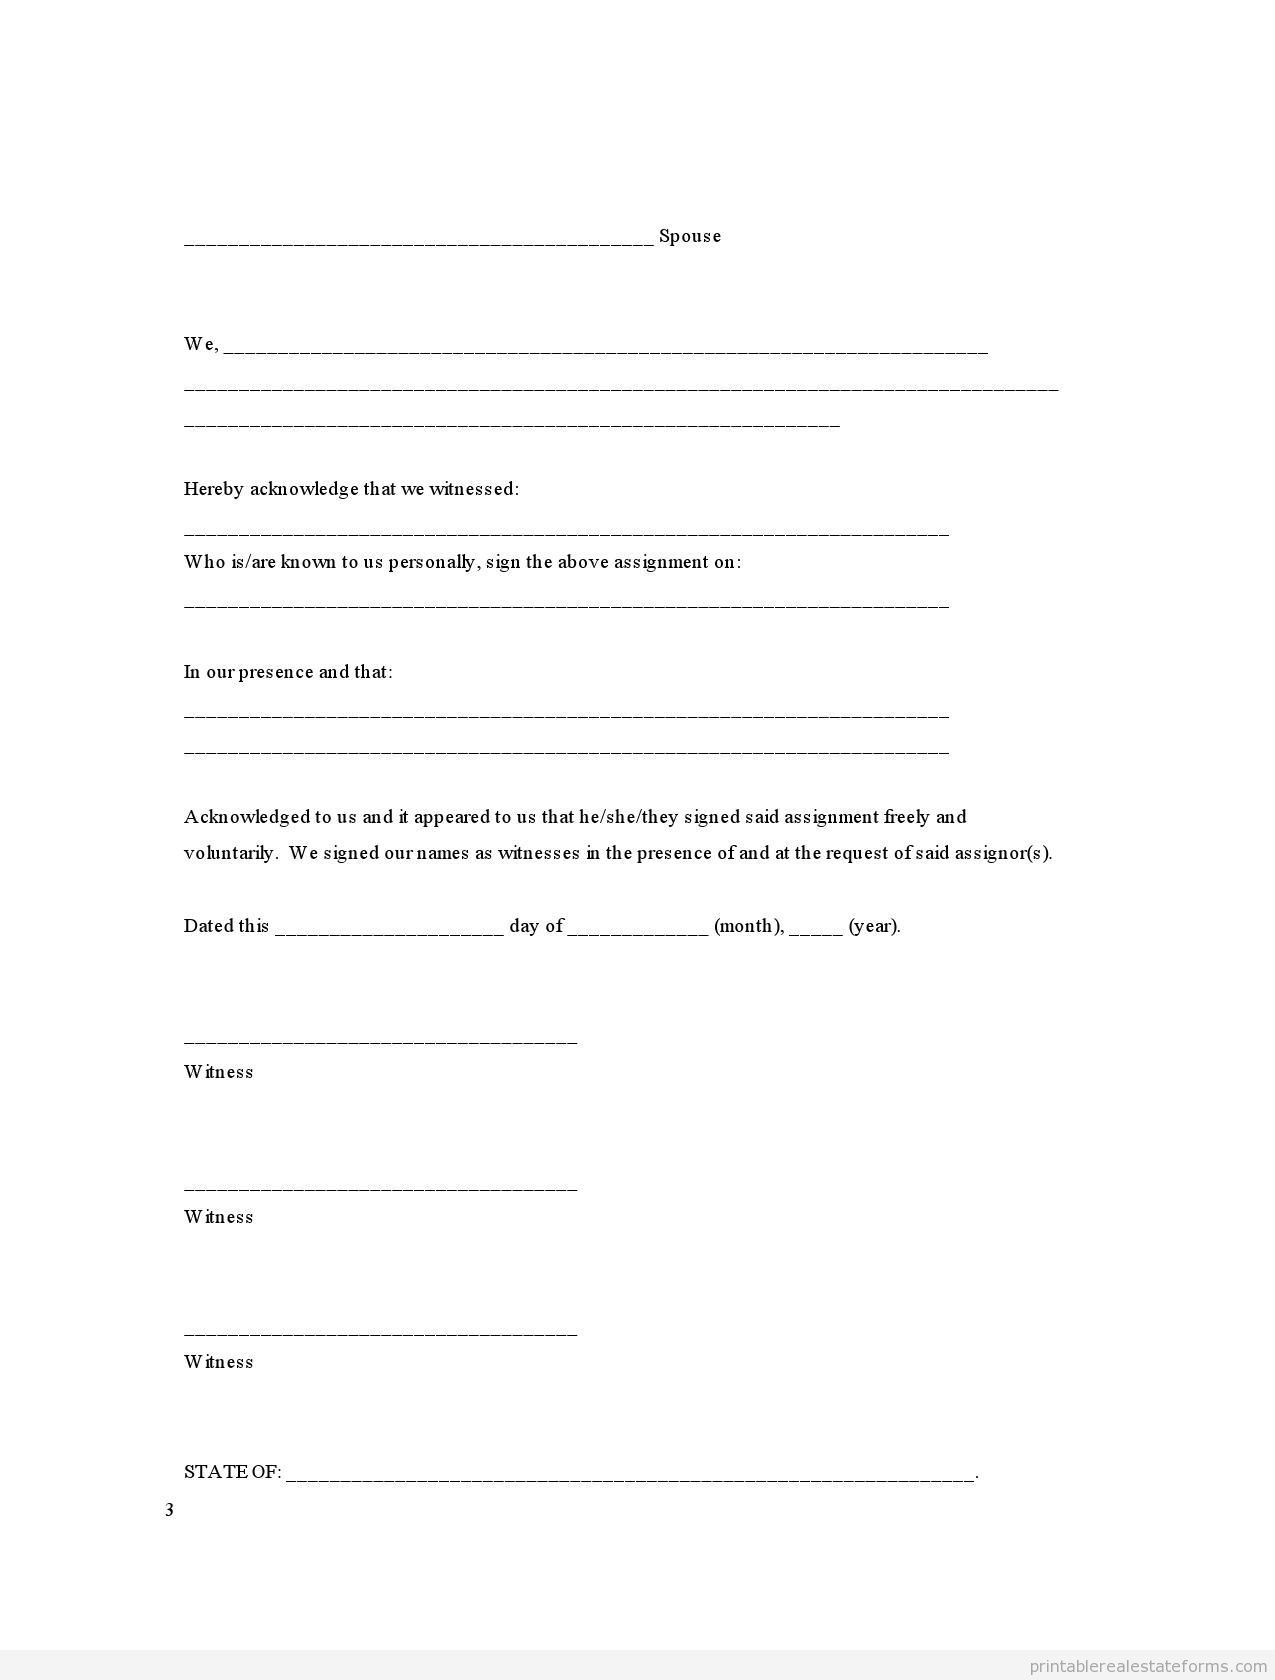 Printable Assignment Joint Ownership With Right Of Survivorship